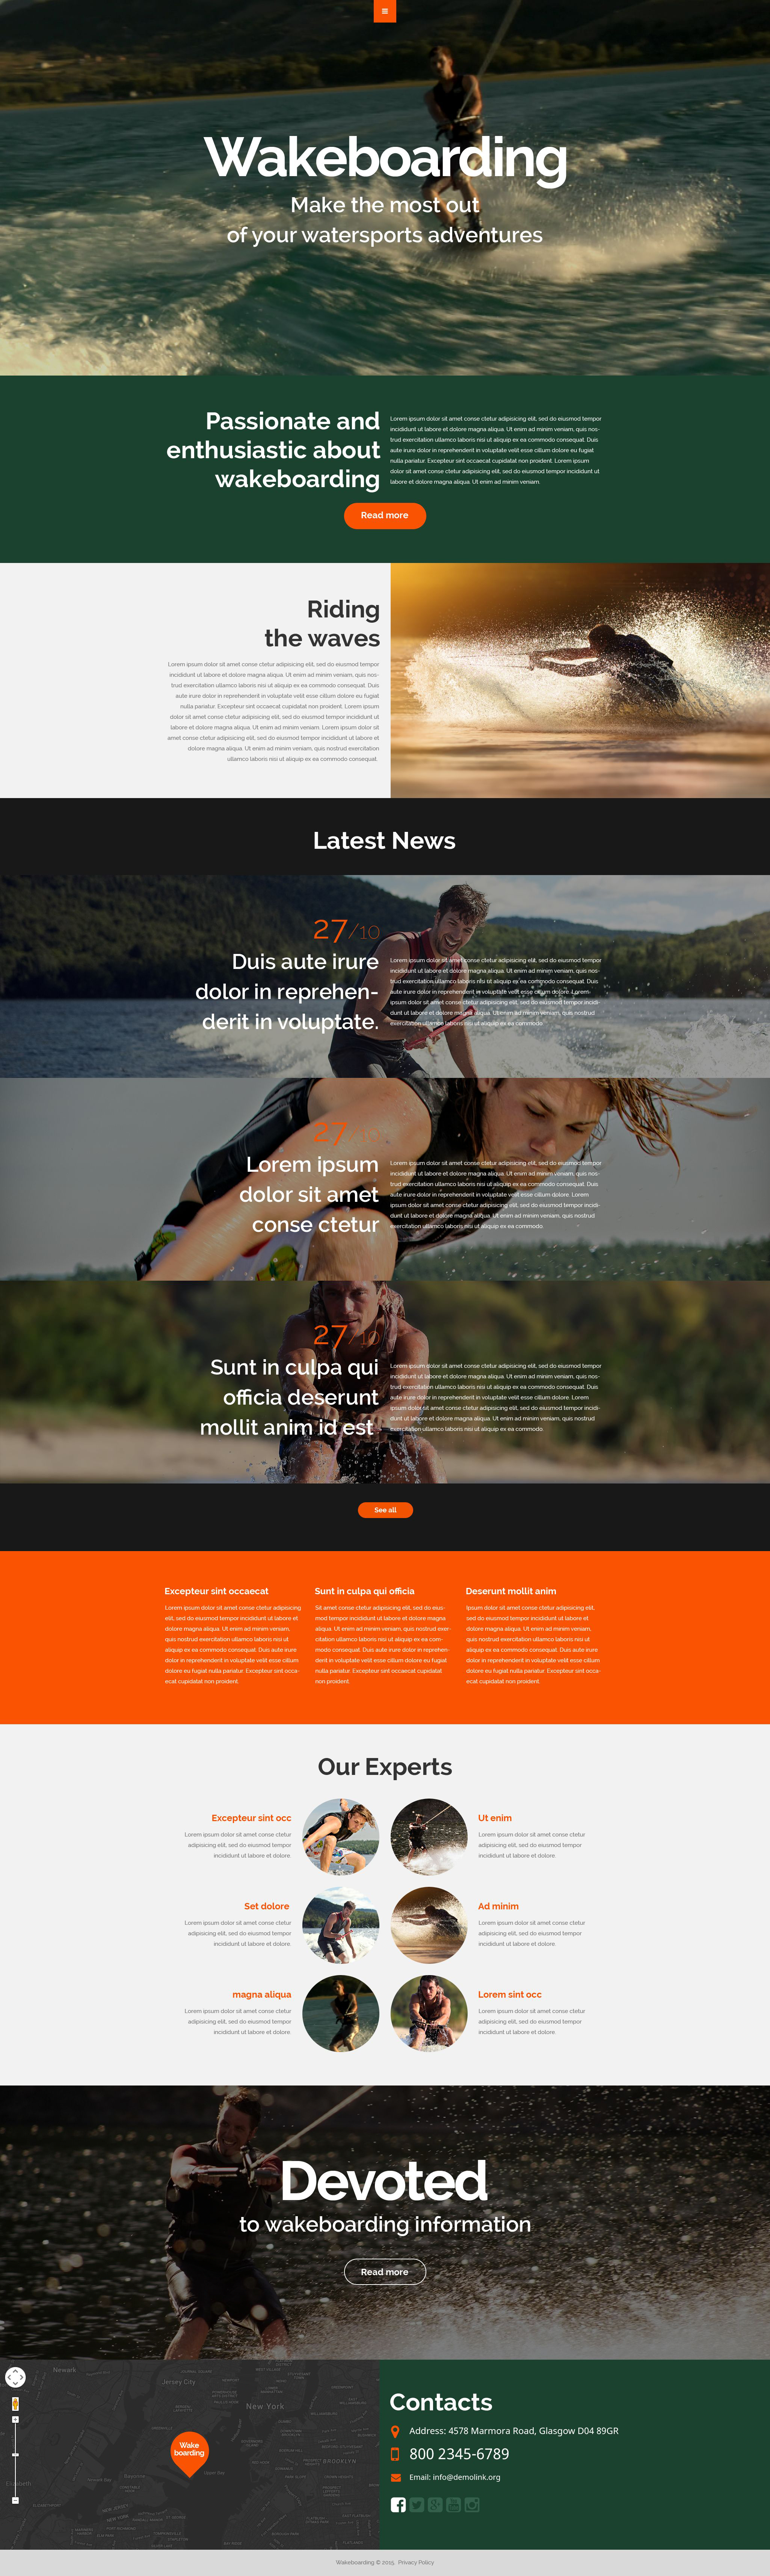 The Wakeboarding Runner Bootstrap Design 53318, one of the best website templates of its kind (sport, most popular), also known as wakeboarding runner website template, wakeboarding website template, magazine website template, news website template, events website template, reviews website template, articles website template, highlights and related with wakeboarding runner, wakeboarding, magazine, news, events, reviews, articles, highlights, etc.